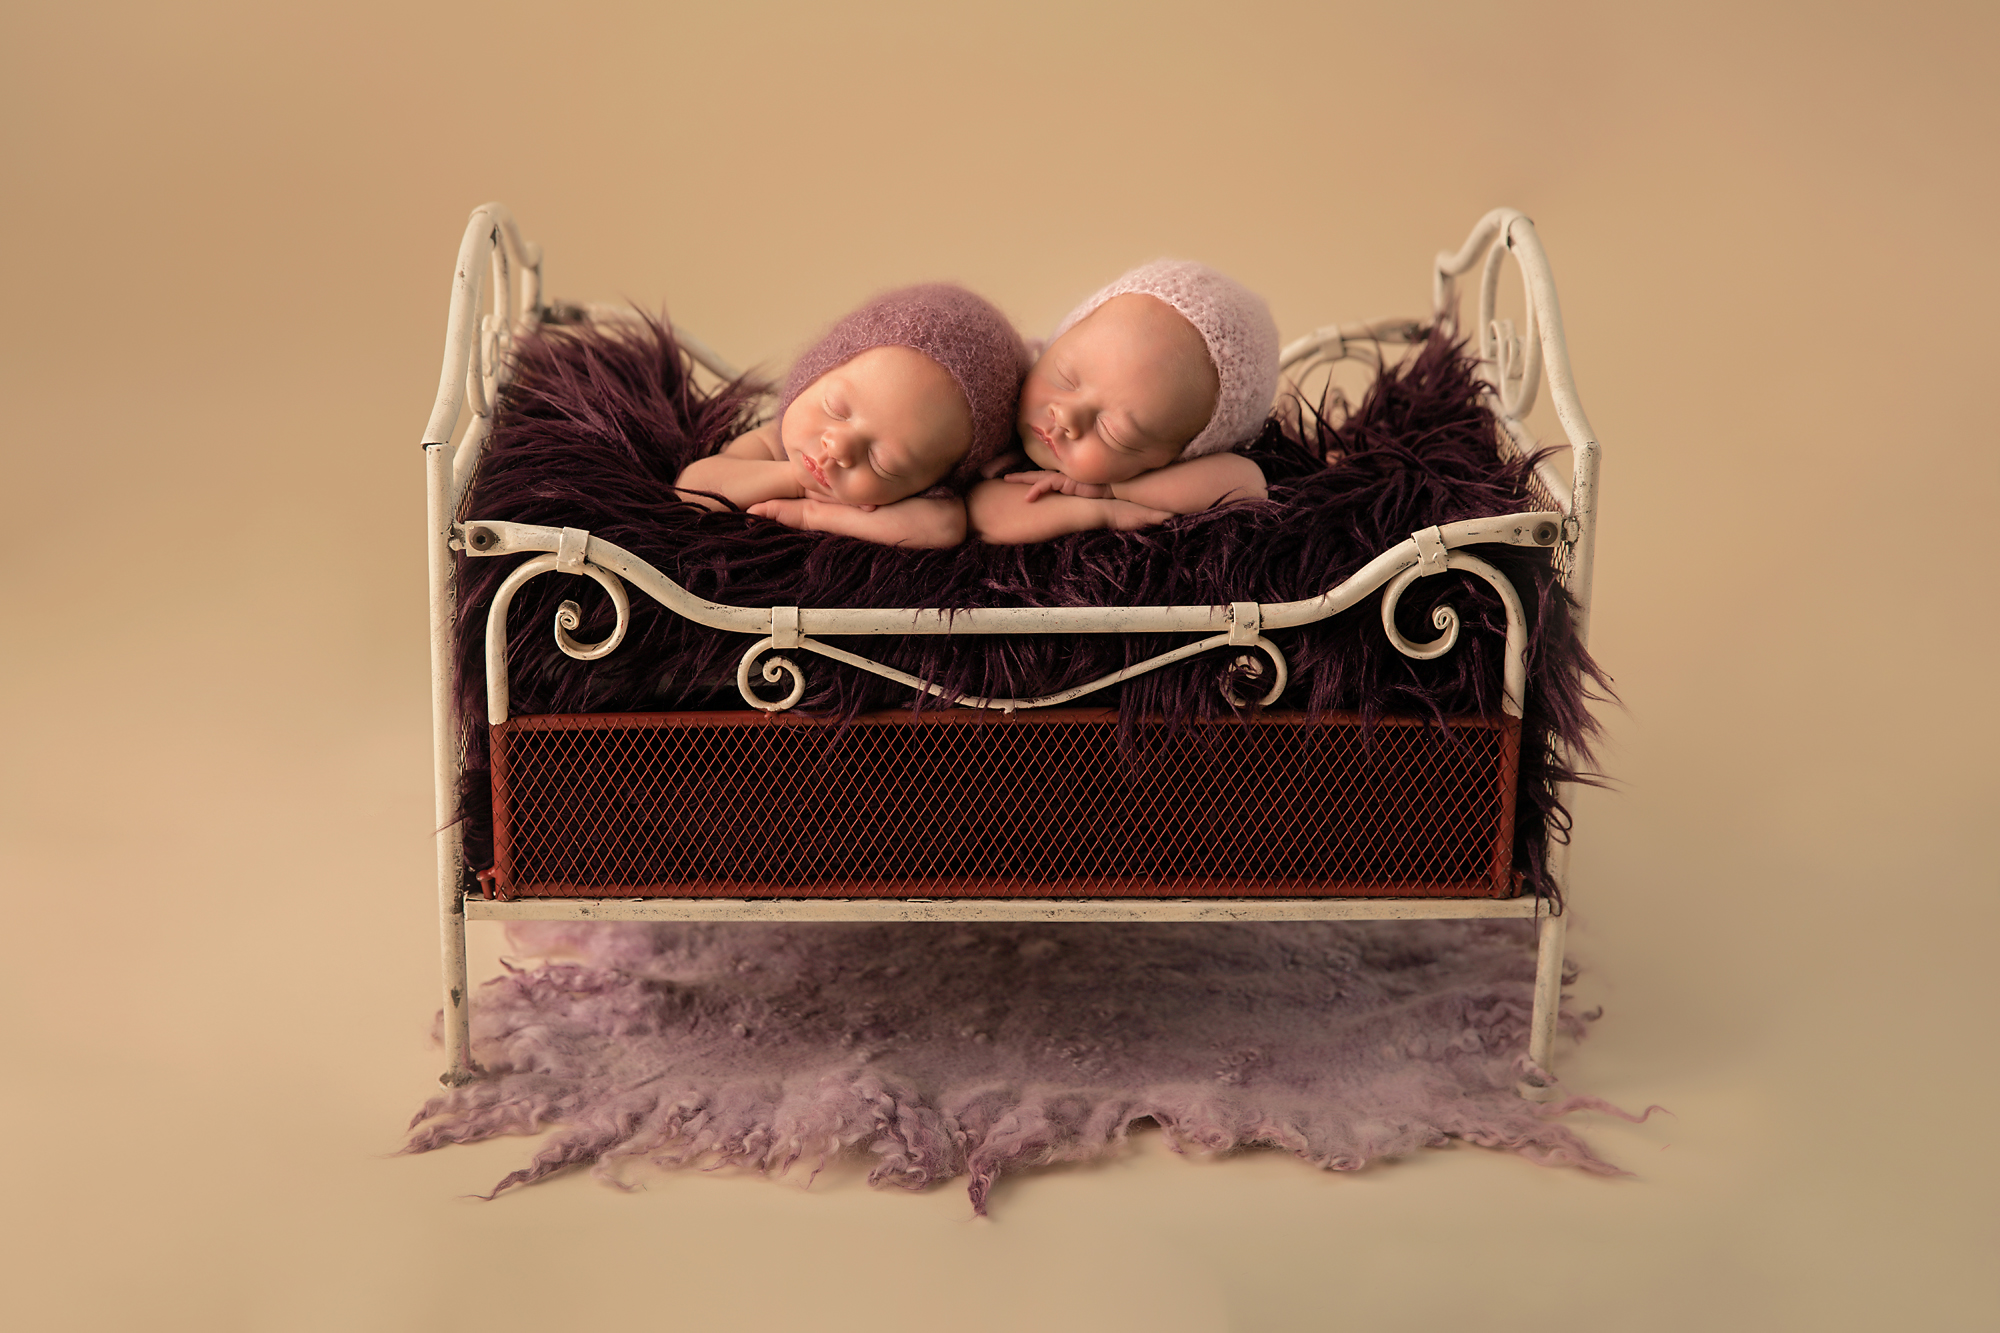 Identical Newborn Baby Sisters. Calgary photoshoot with Milashka Photography. Two newborn twin sisters are posed in the antique bed with purple rug and wearing purple bonnets.